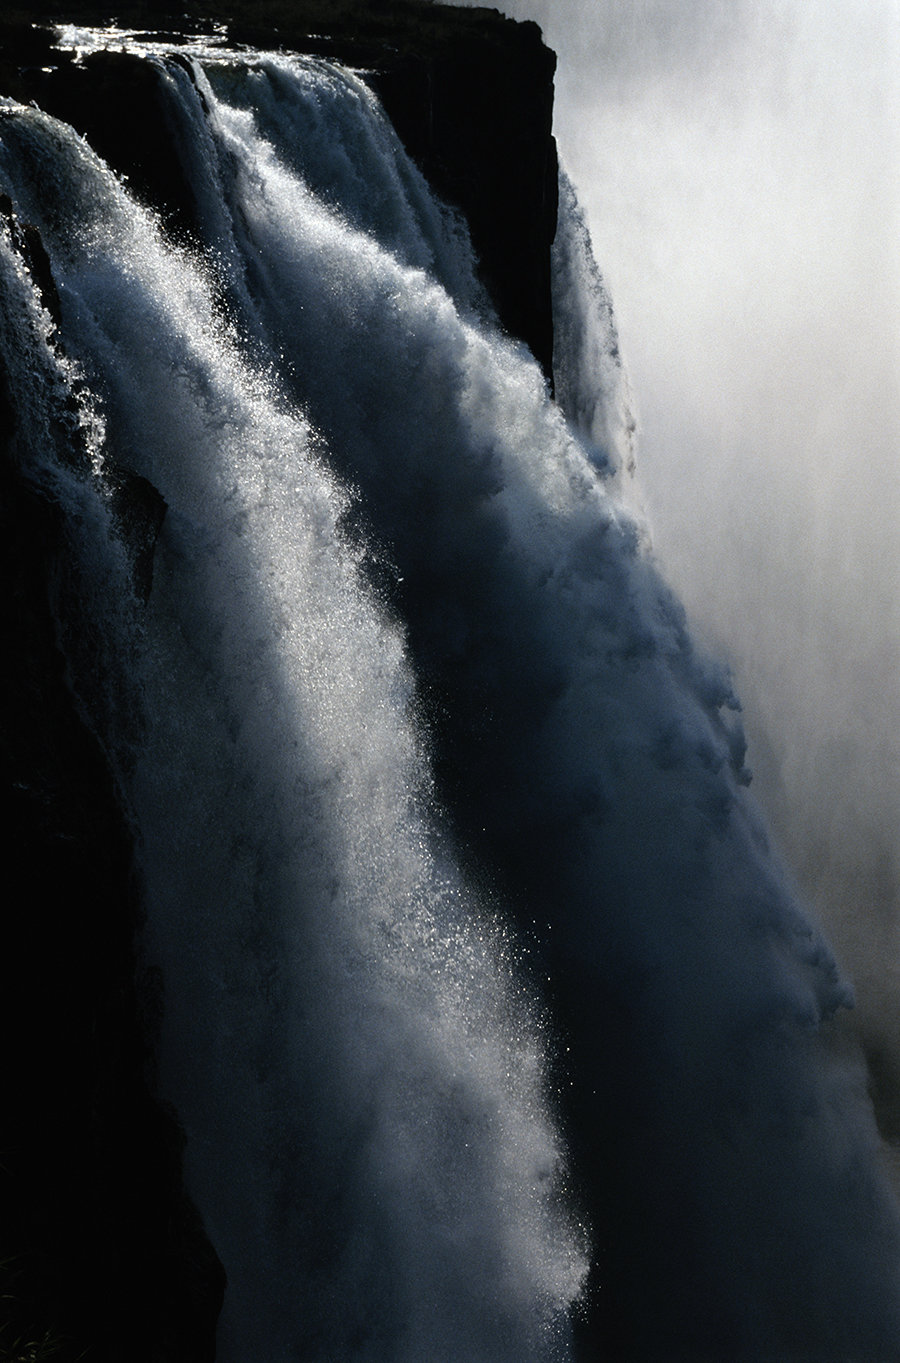 """""""Water is the softest thing, yet it can penetrate mountains and earth. This shows clearly the principle of softness overcoming hardness.""""   Lao Tzu    Photograph by Chris Johns, National Geographic"""